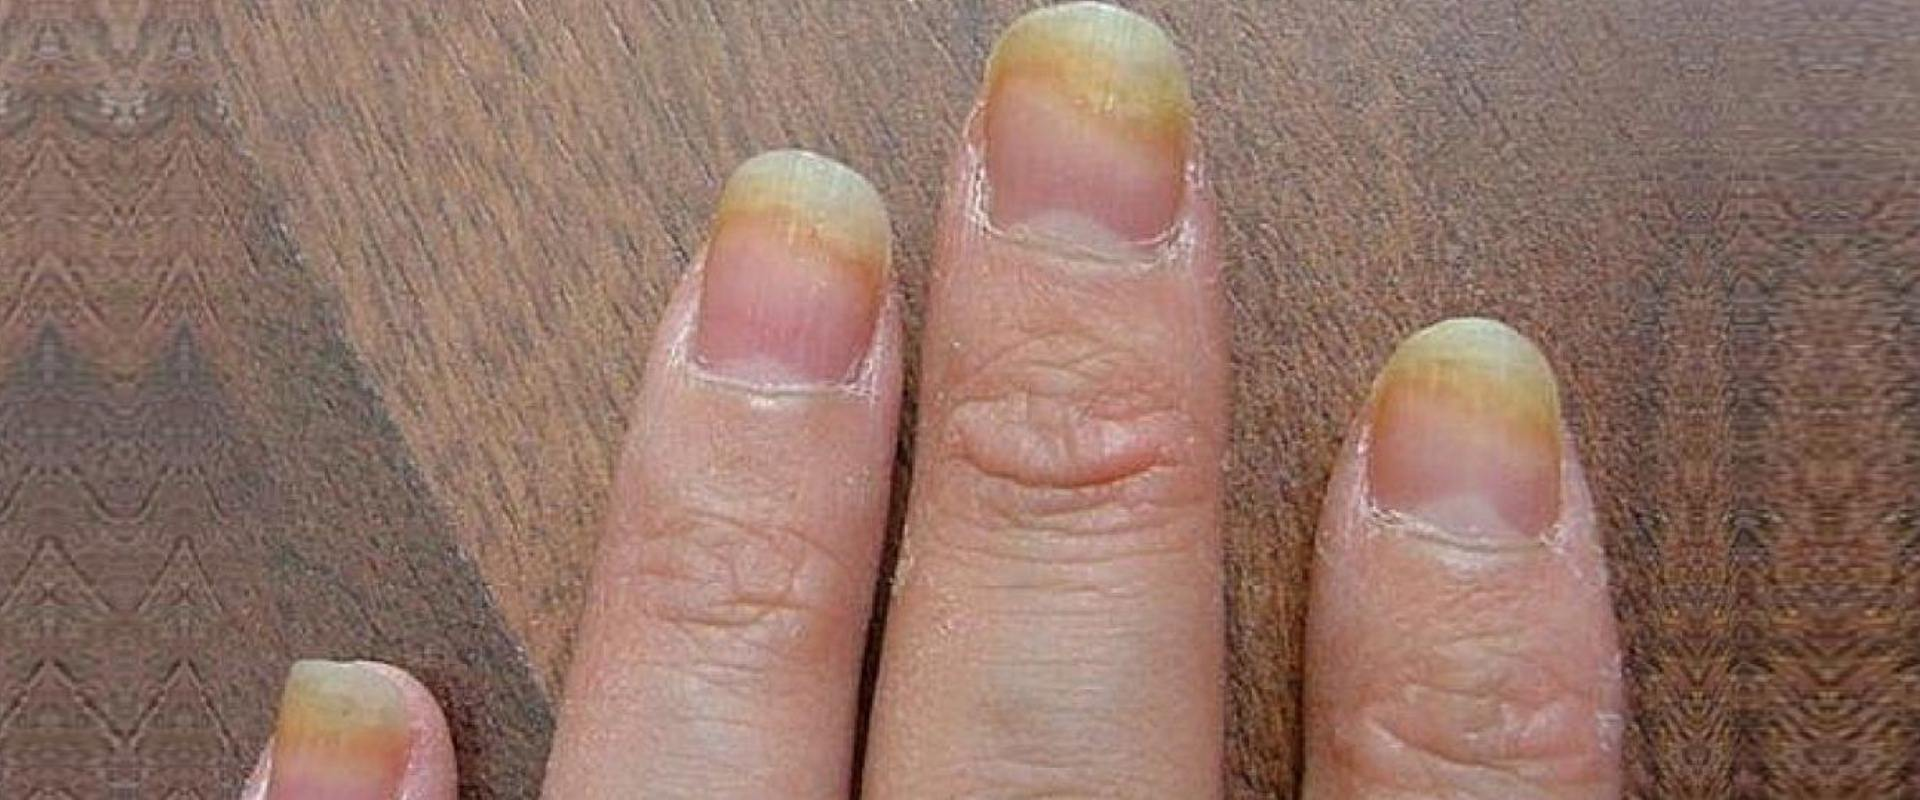 Nail Fungus Home Remedies, Natural Treatments And Cures | Lady Care ...